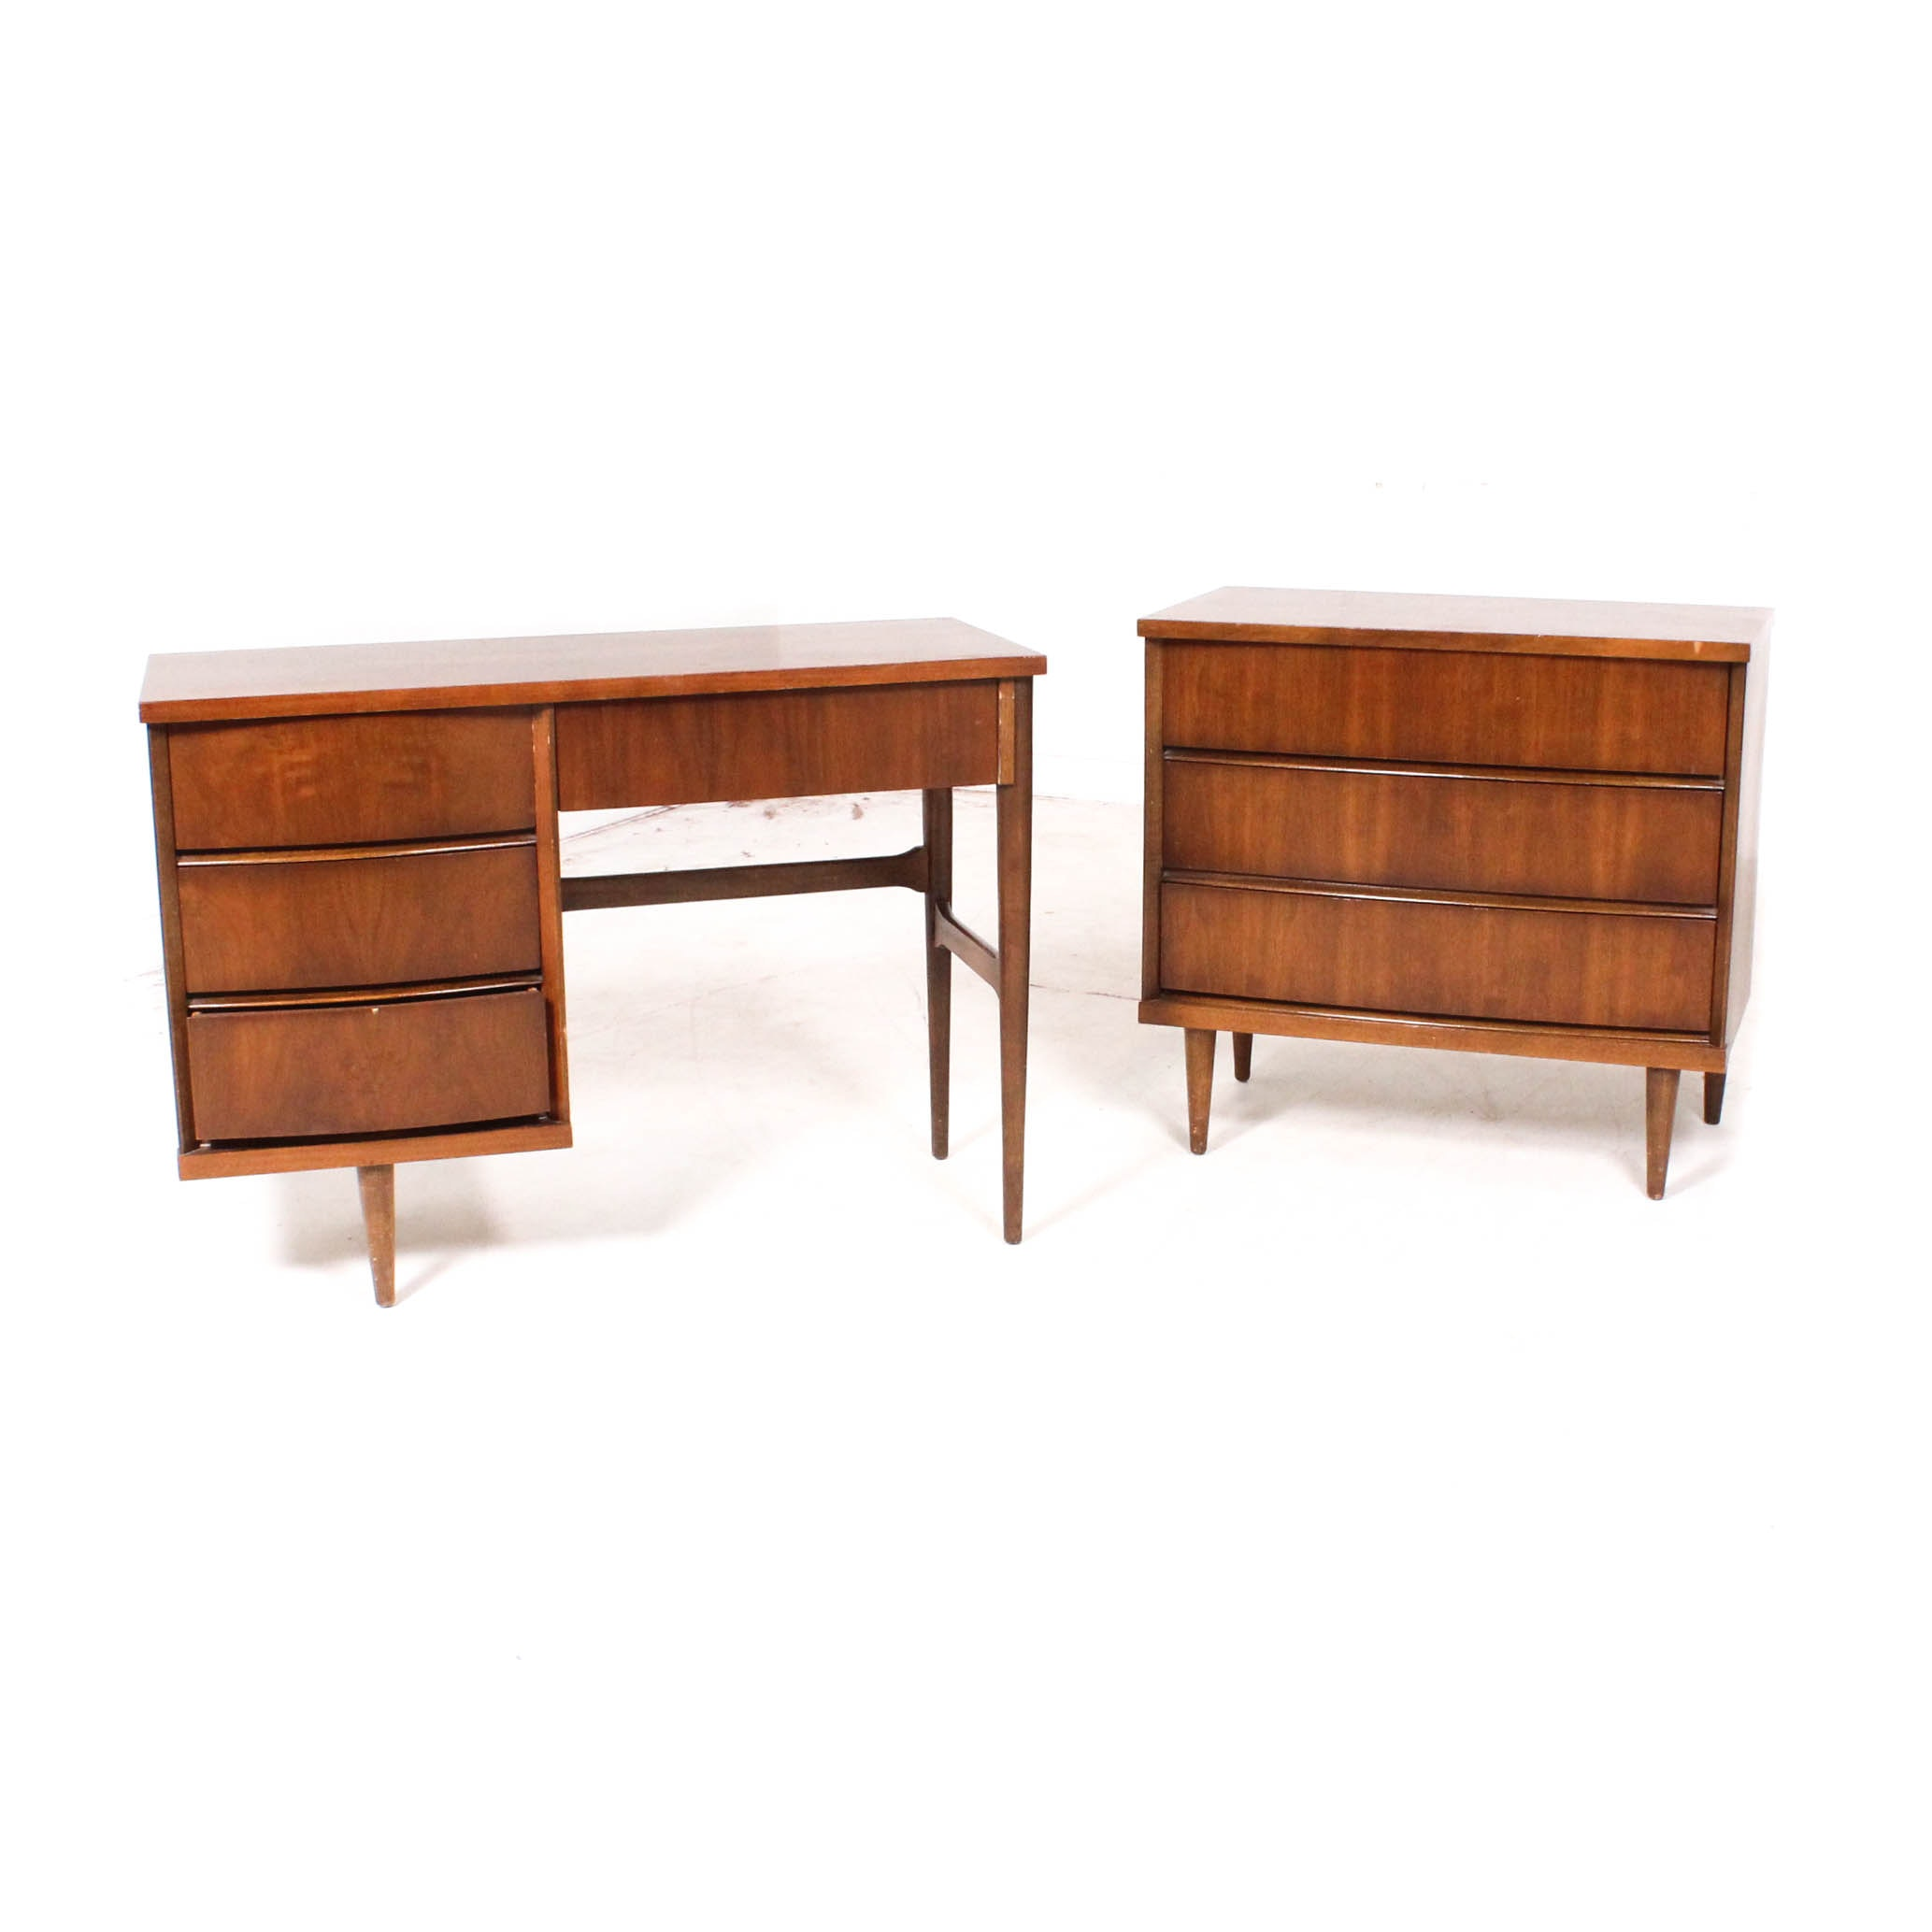 Walnut Mid Century Modern Desk and Dresser by Bassett Furniture